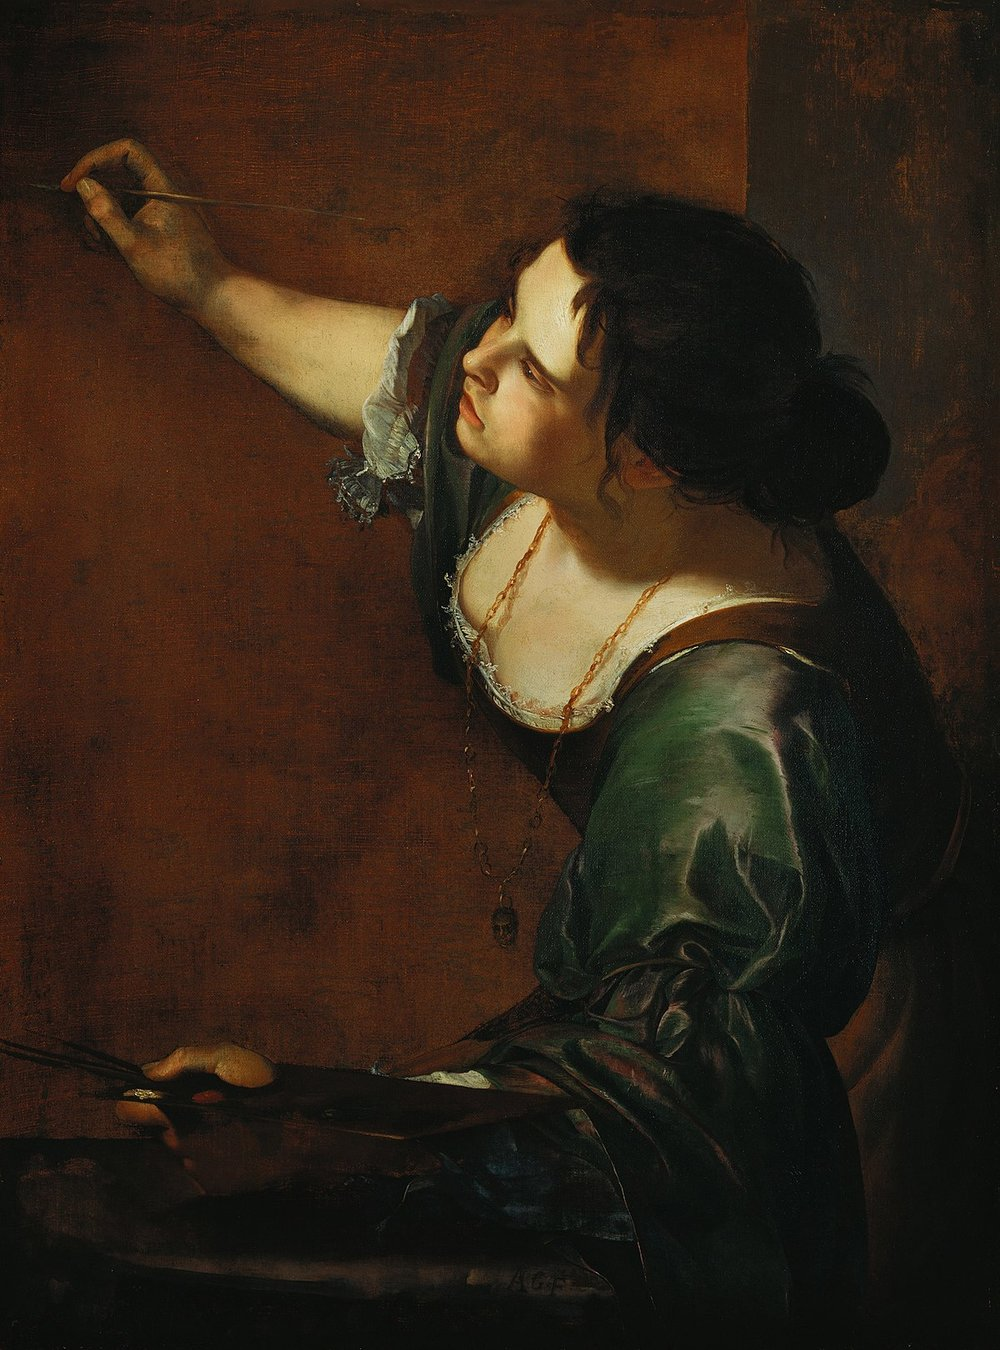 1200px-Self-portrait_as_the_Allegory_of_Painting_(La_Pittura)_-_Artemisia_Gentileschi.jpg